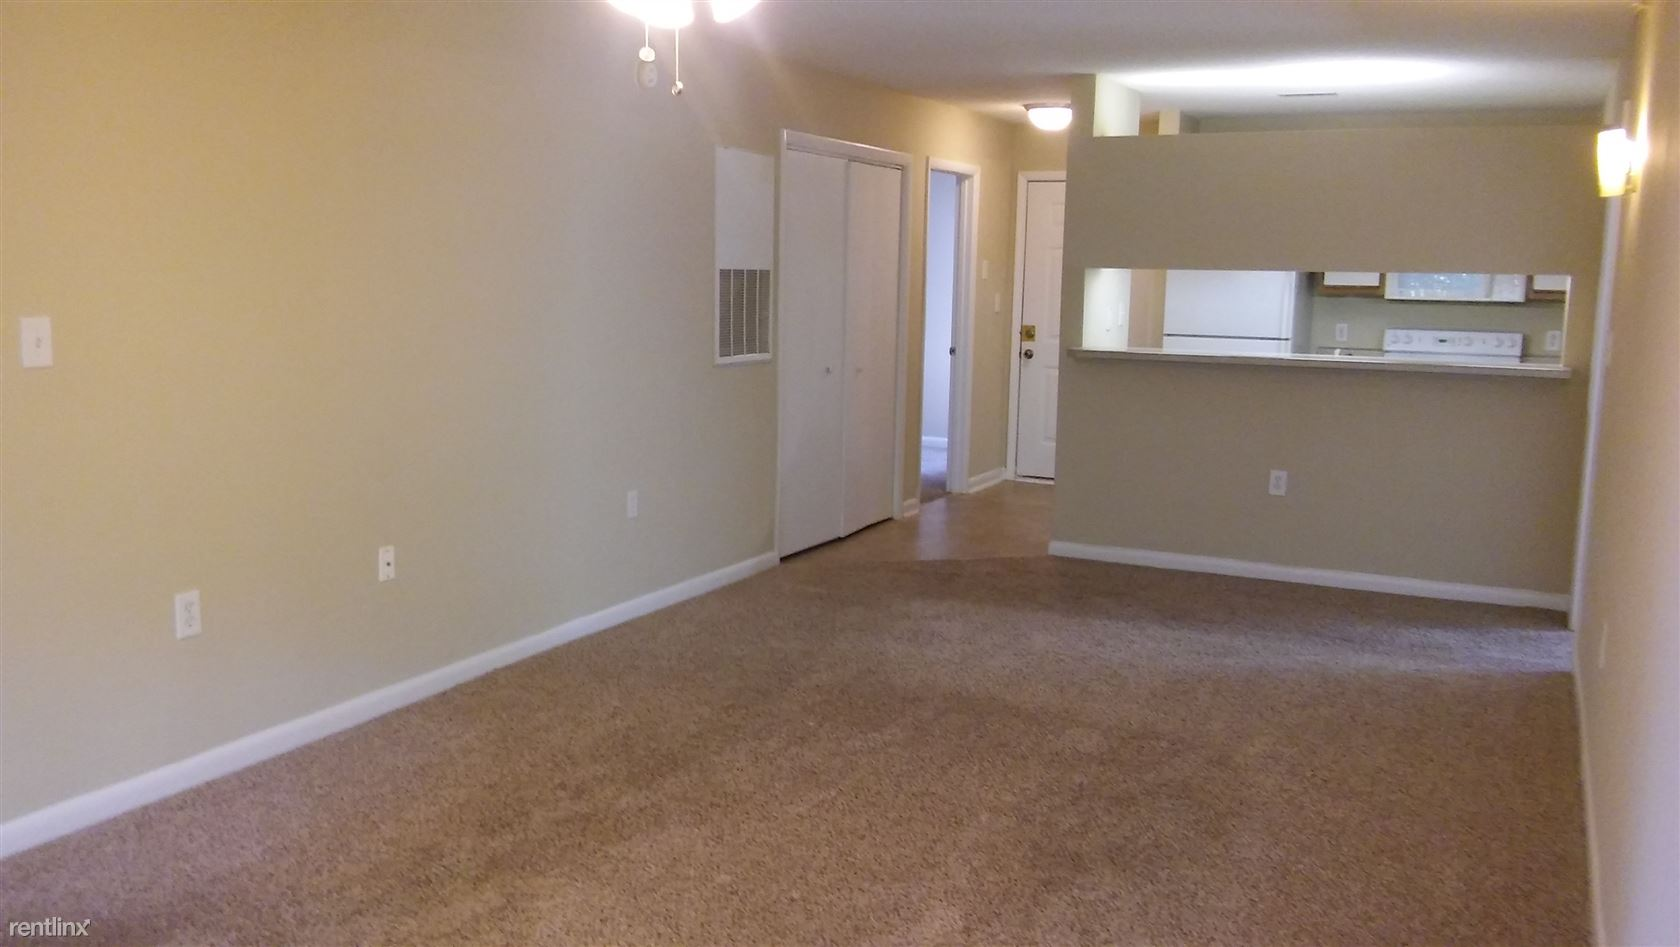 1321 Crab Orchard Dr, Raleigh, NC - $465 USD/ month